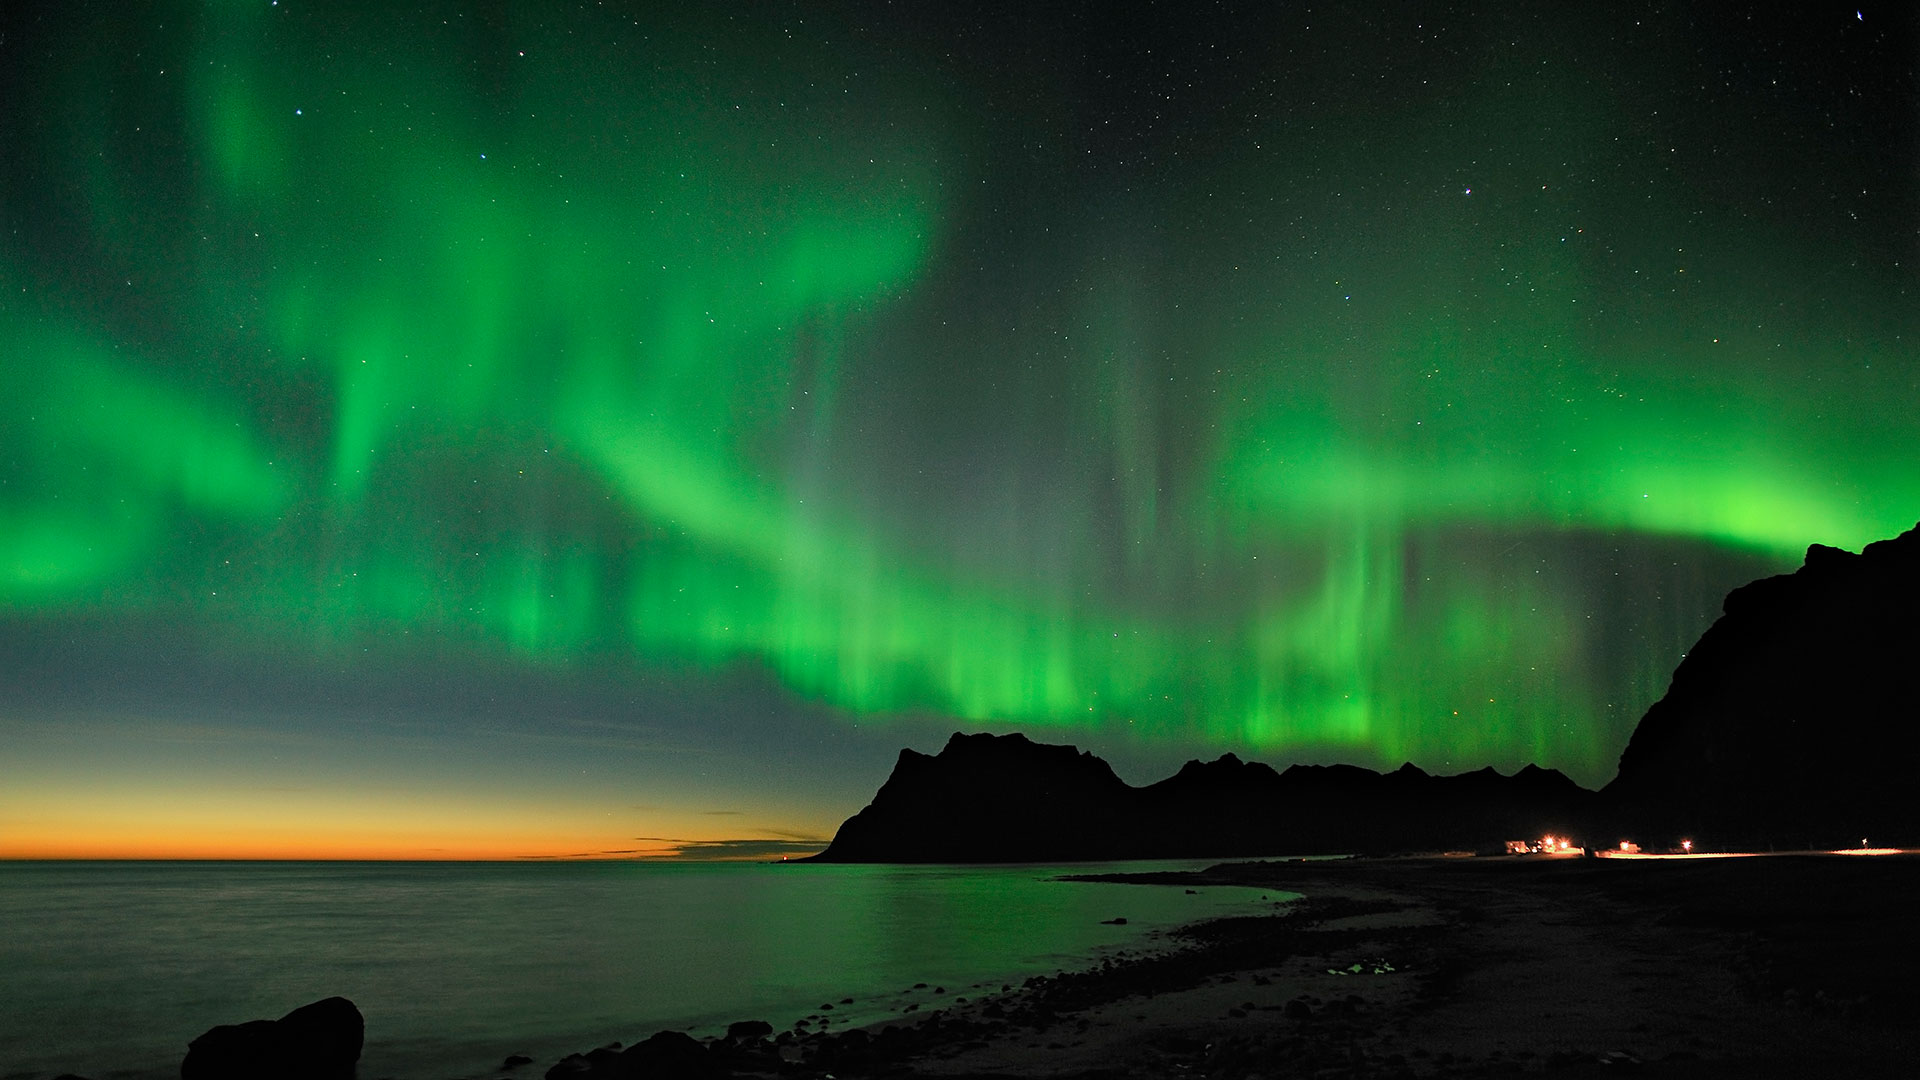 Northern lights over the Lofoten Islands in Norway - Photo: visitnorway.com/Bjorn Jorgensen